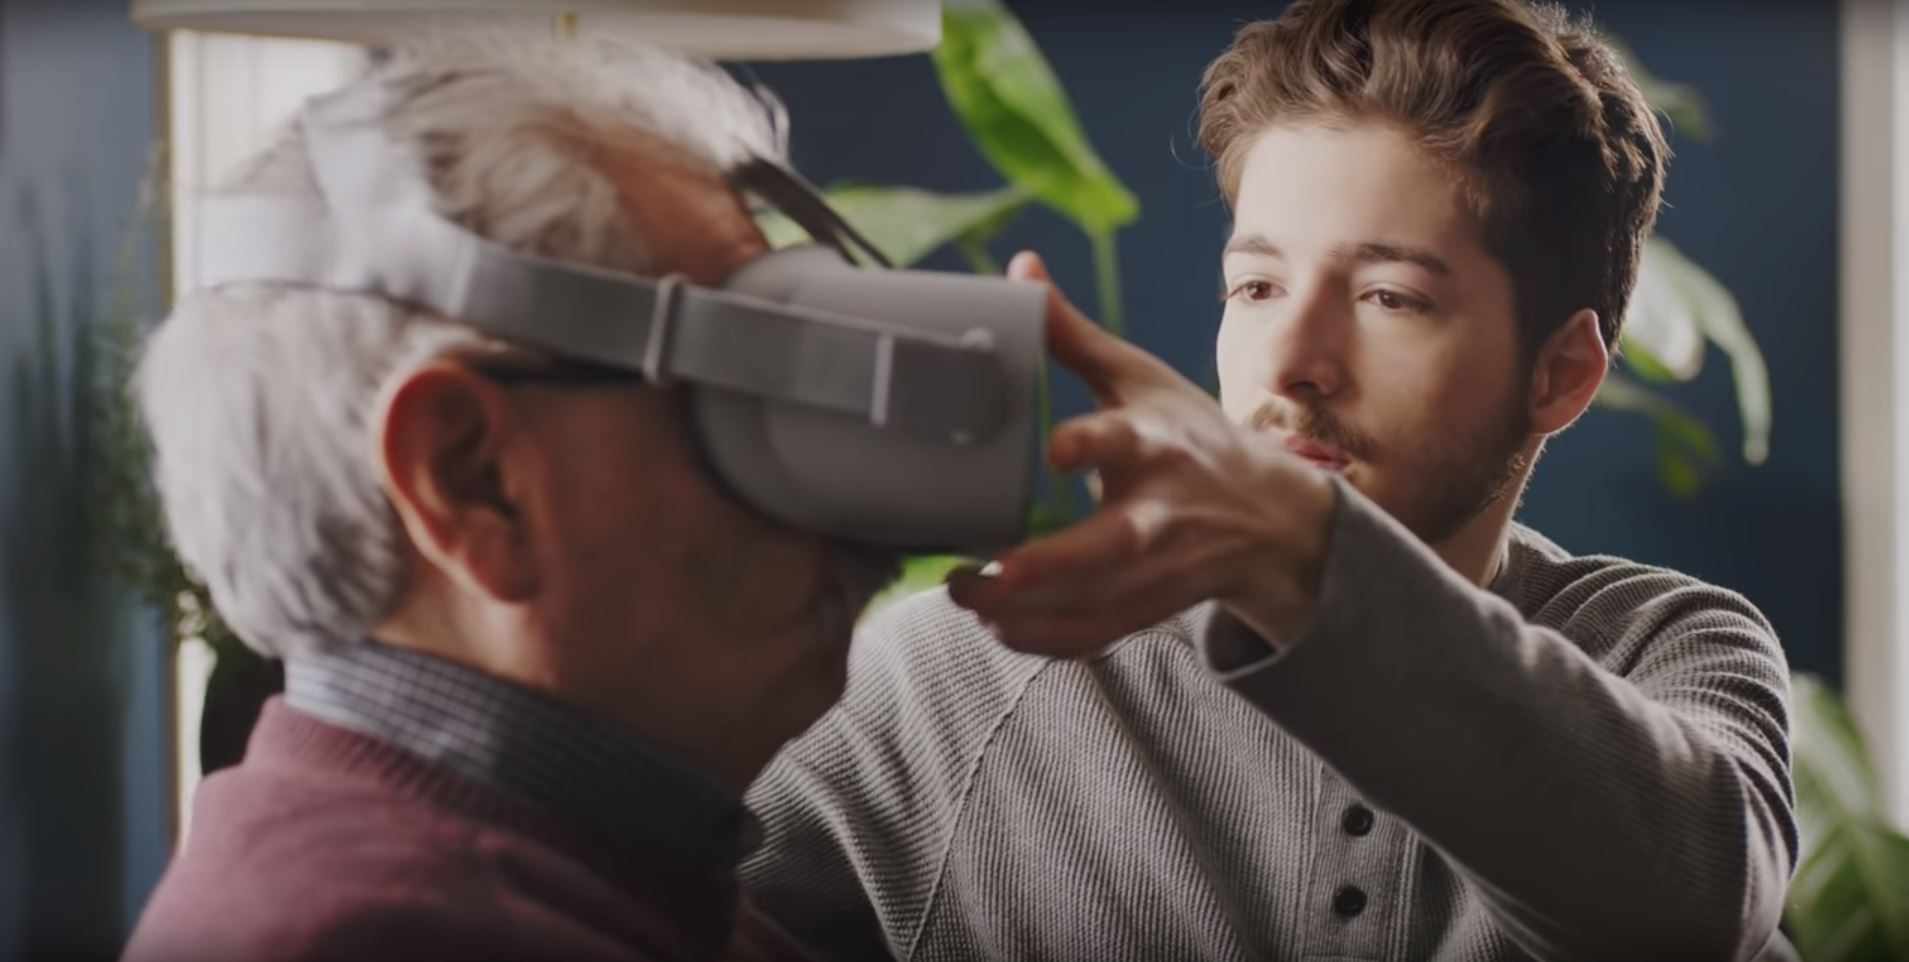 student Enzo Vinholi places a virtual reality headset on an alzheimers patient